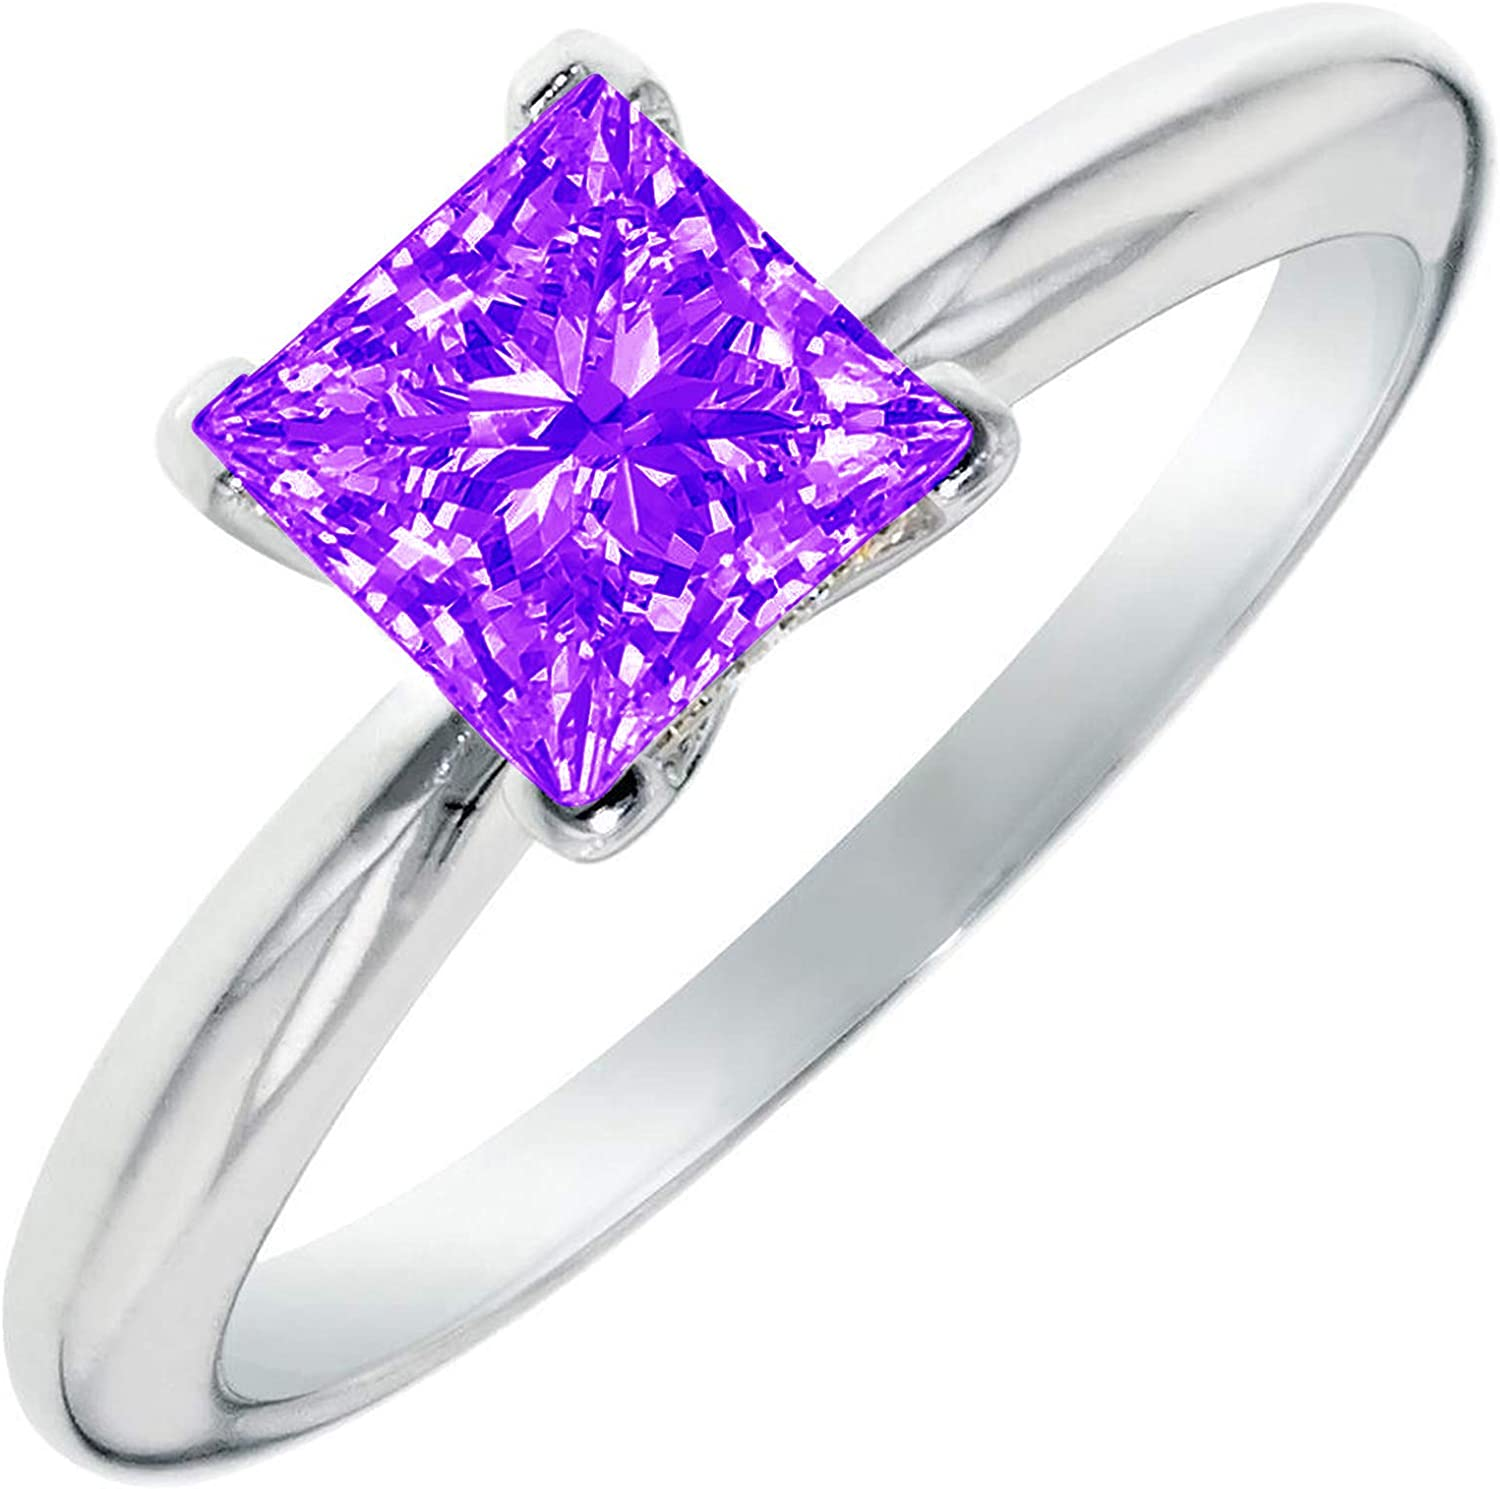 0.4ct Brilliant Princess Cut Solitaire Natural Purple Amethyst Ideal VVS1 4-Prong Engagement Wedding Bridal Promise Anniversary Ring Solid 14k White Gold for Women